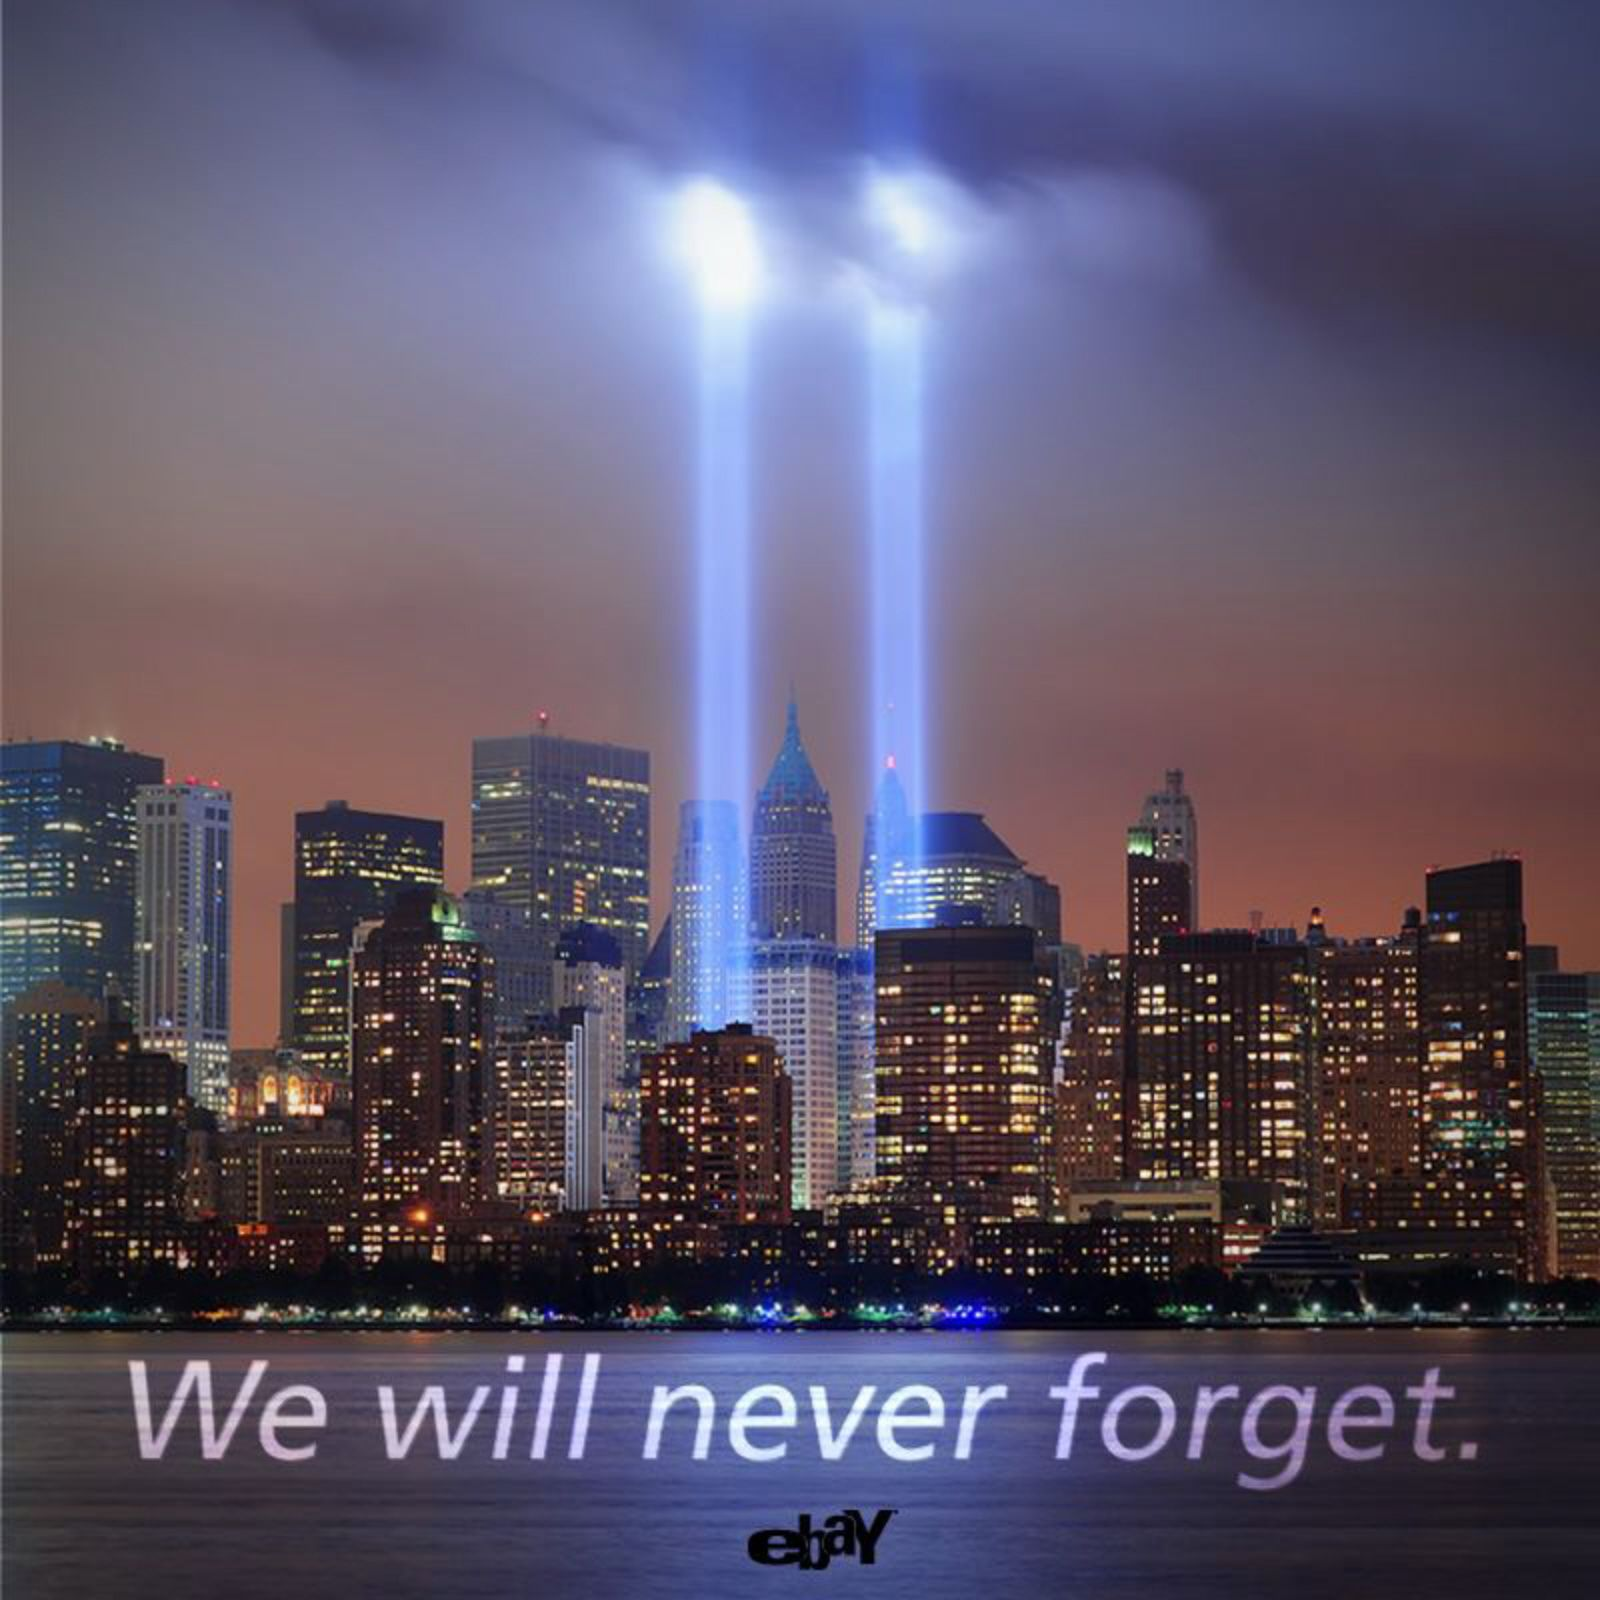 We Will Never Forget 9 11 Wallpaper Twin Tower Lights September 11 2012 Ebay We Will Never Forget We Remember Never Forget